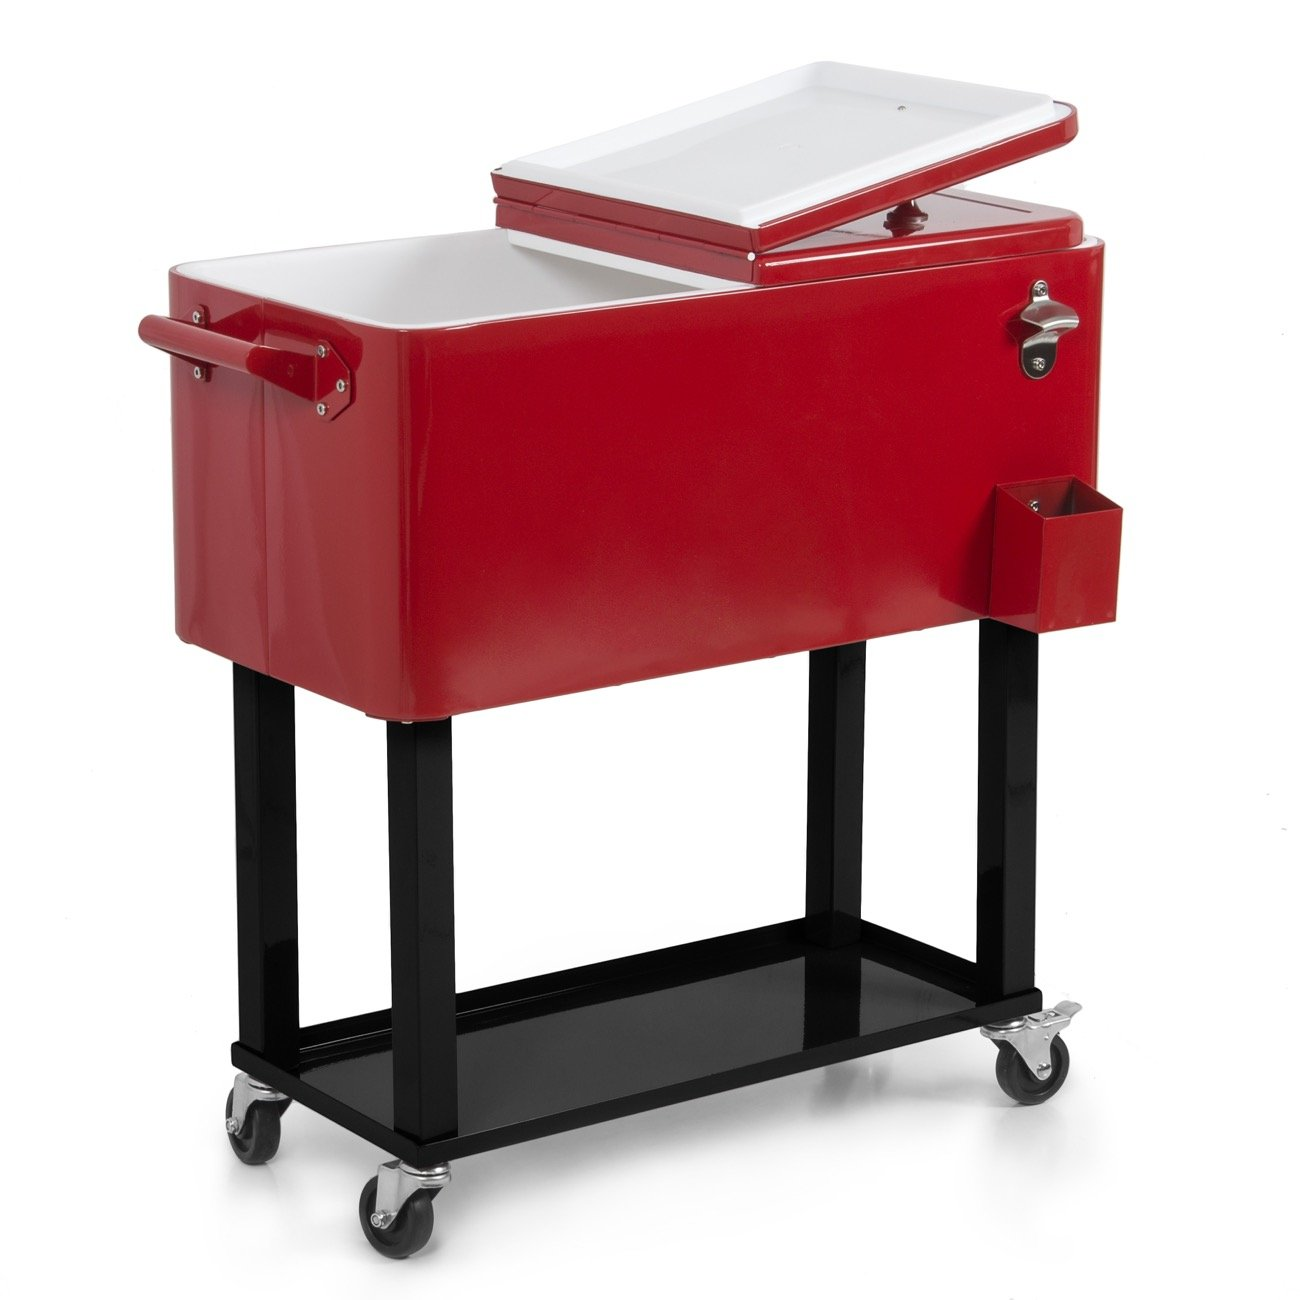 Belleze Rolling Ice Chest Portable Patio Drink Party Cooler Cart, 80-Quart, Red by Belleze